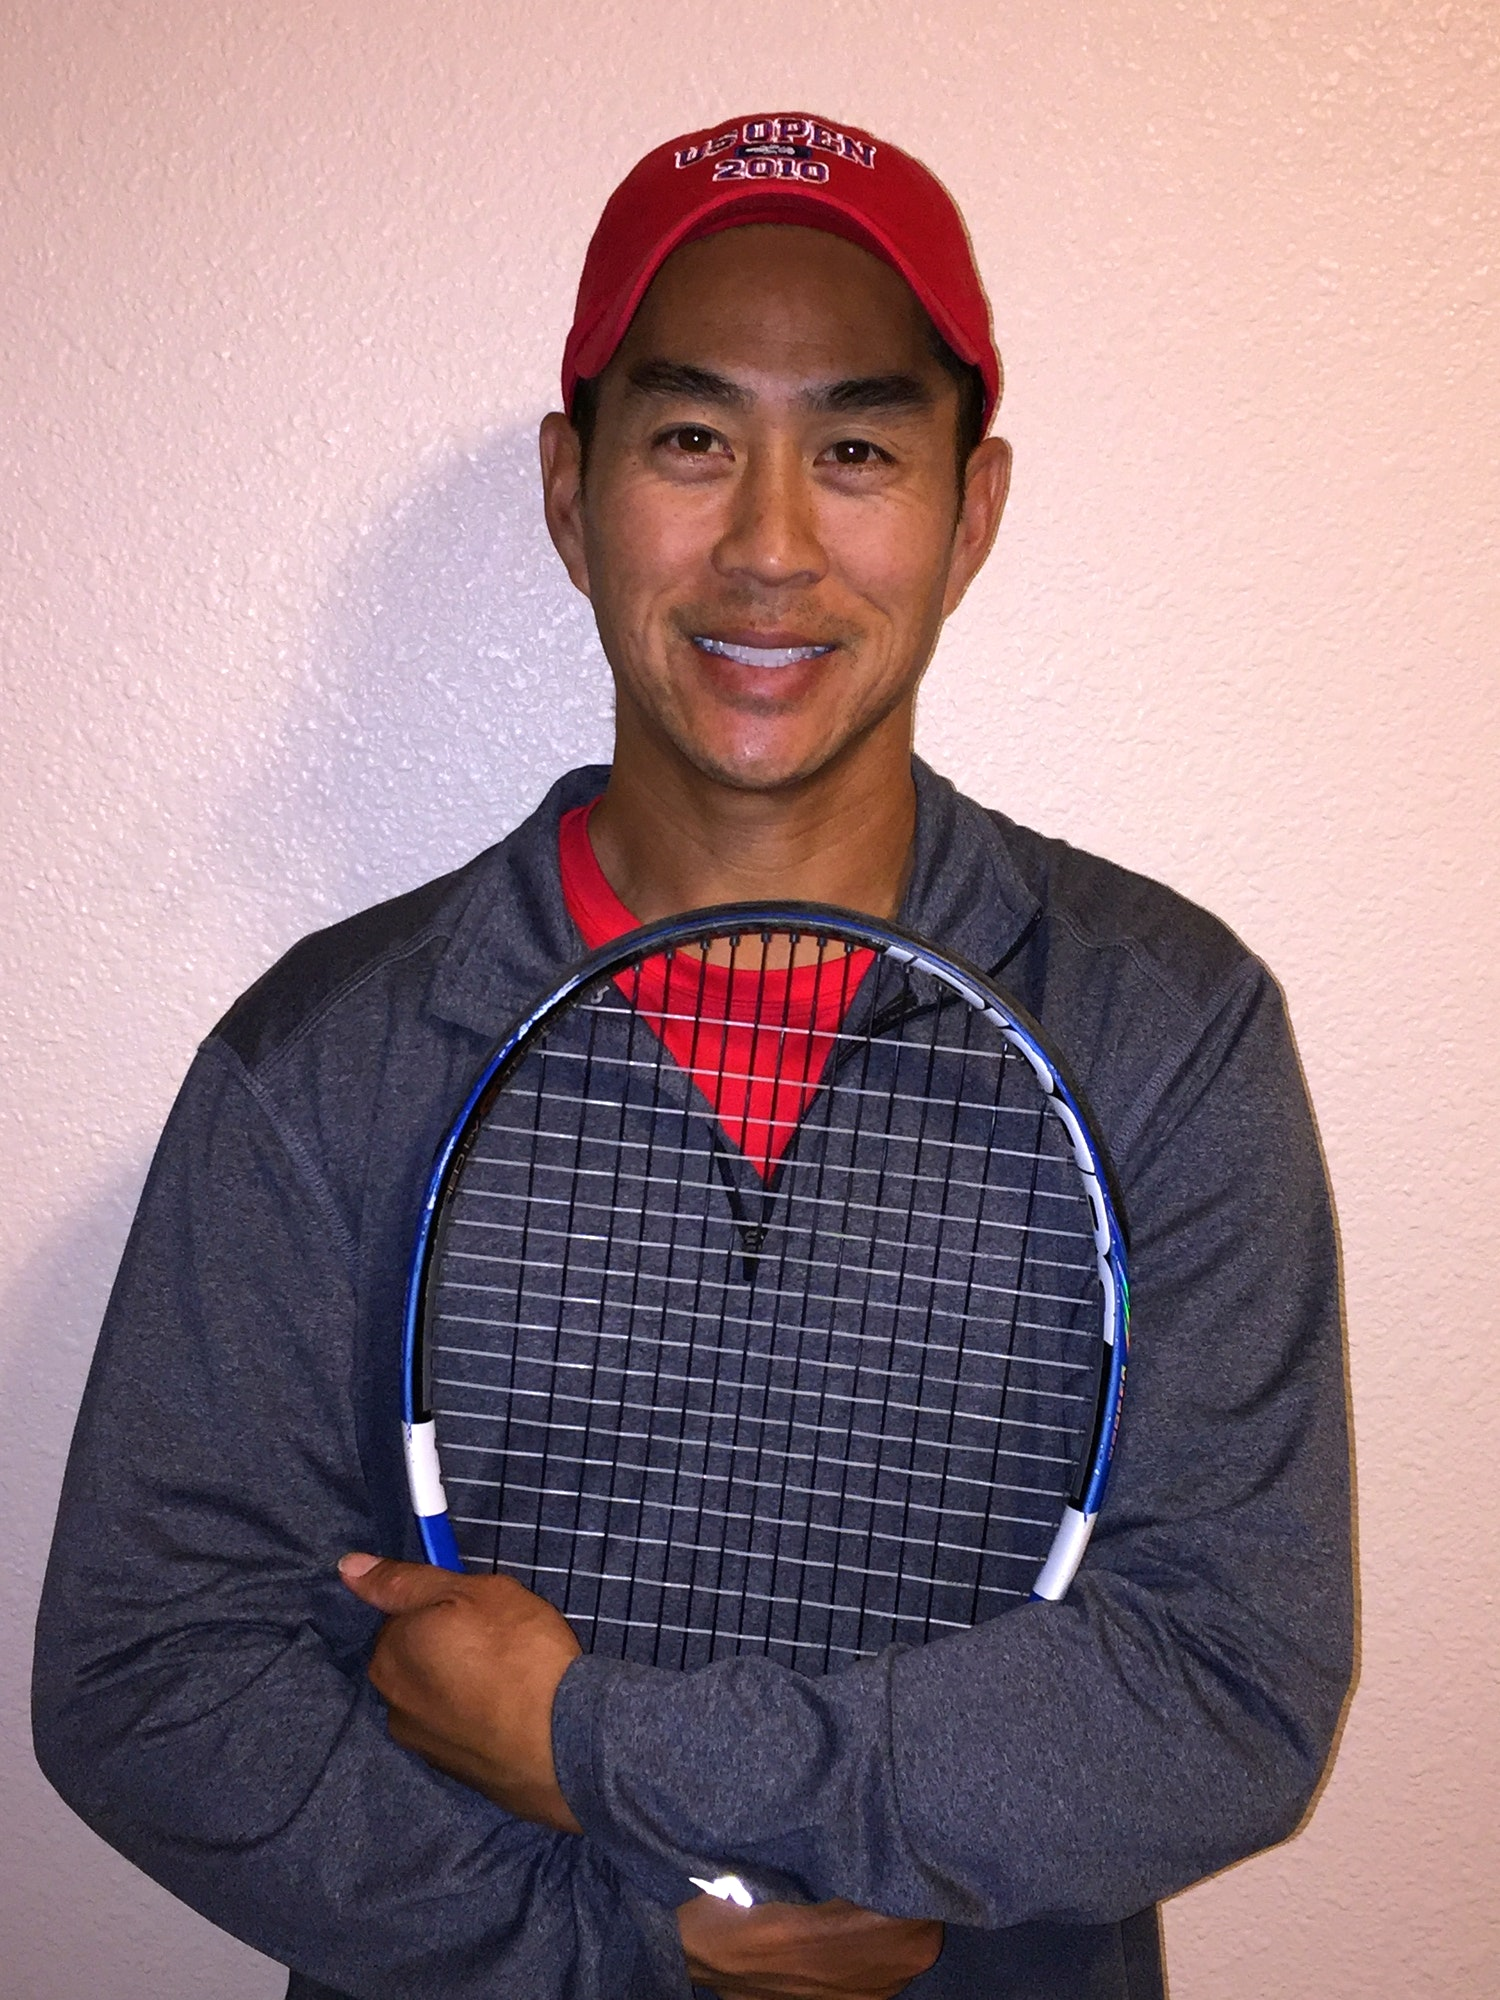 Richard Q. teaches tennis lessons in Clovis, CA